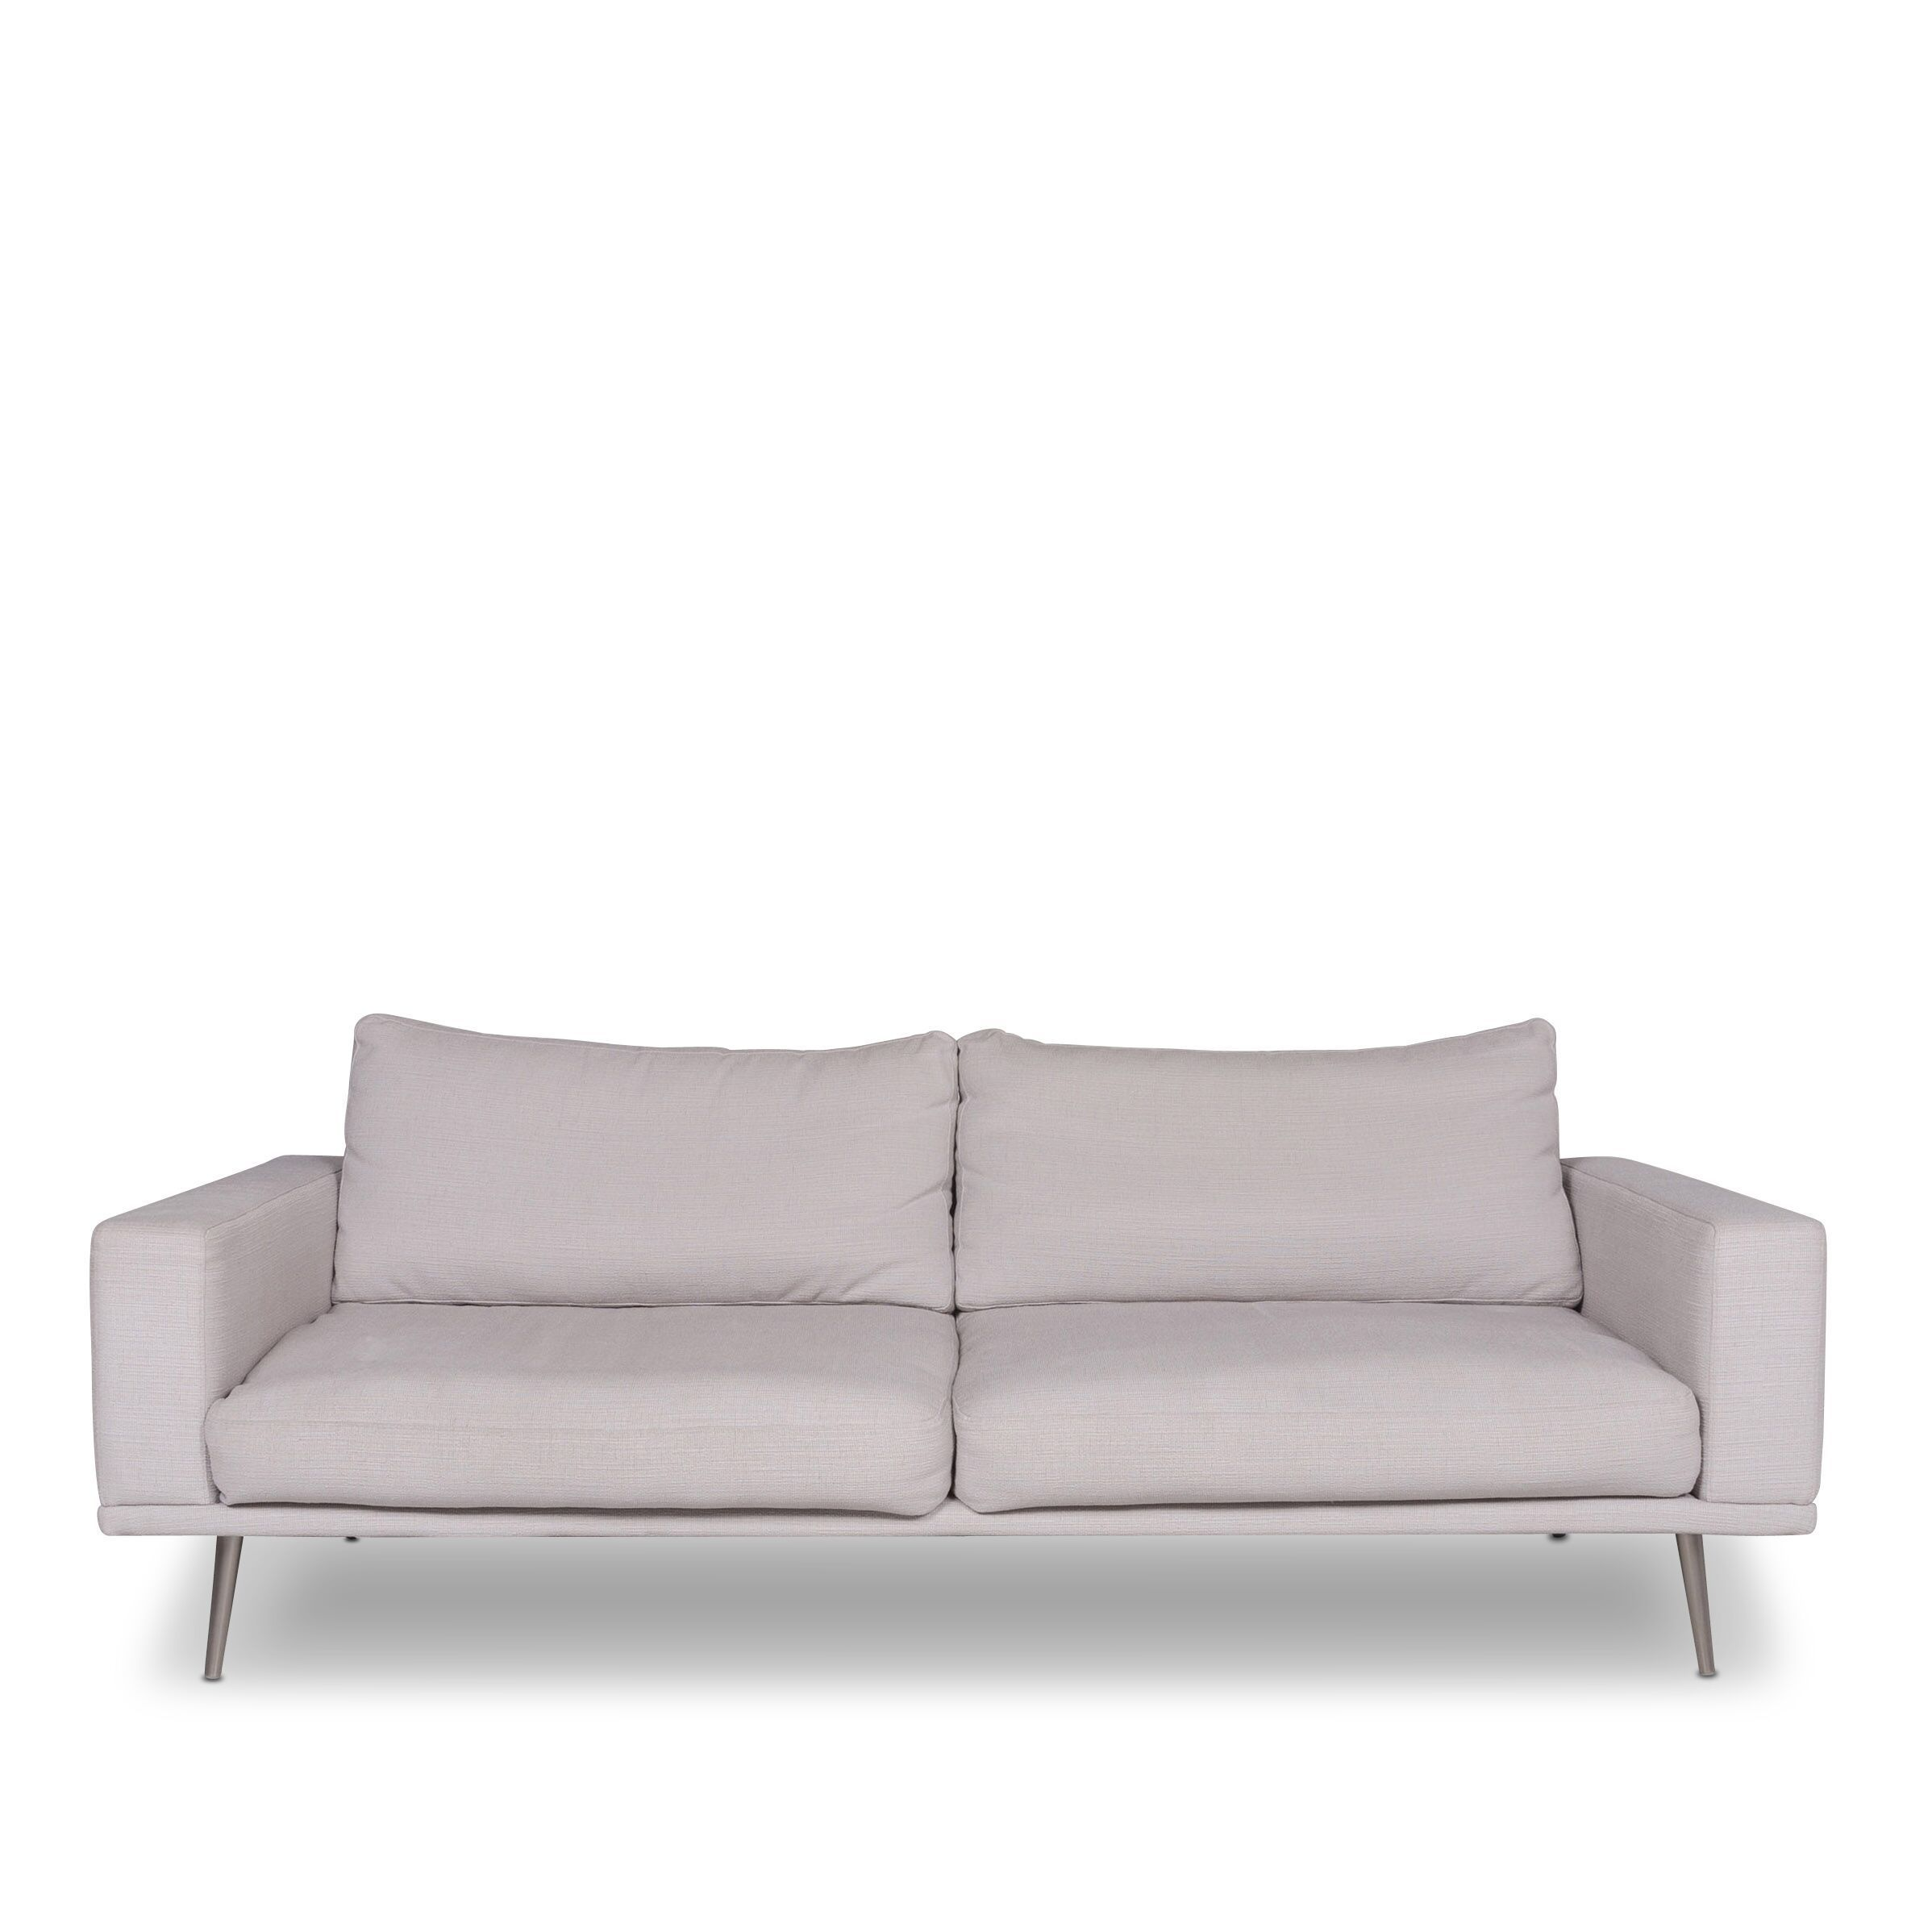 Incredible Bo Concept Carlton Designer Fabric Couch Three Seater Gray 9913 Unemploymentrelief Wooden Chair Designs For Living Room Unemploymentrelieforg